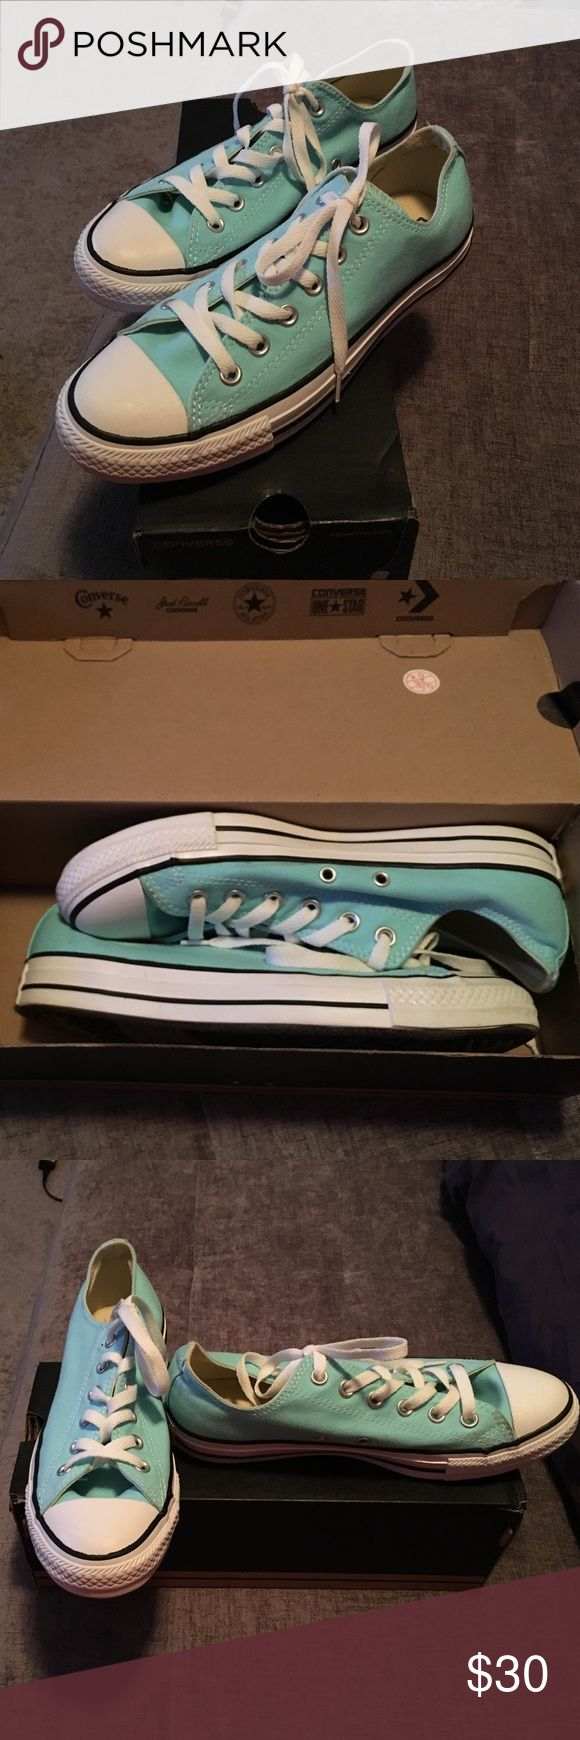 Converse Chuck Taylor Allstar. Classic Low Top Sneaker in Pale Blue.  Size 9 Women's, Size 7 Men's.  Worn once. Converse Shoes Sneakers